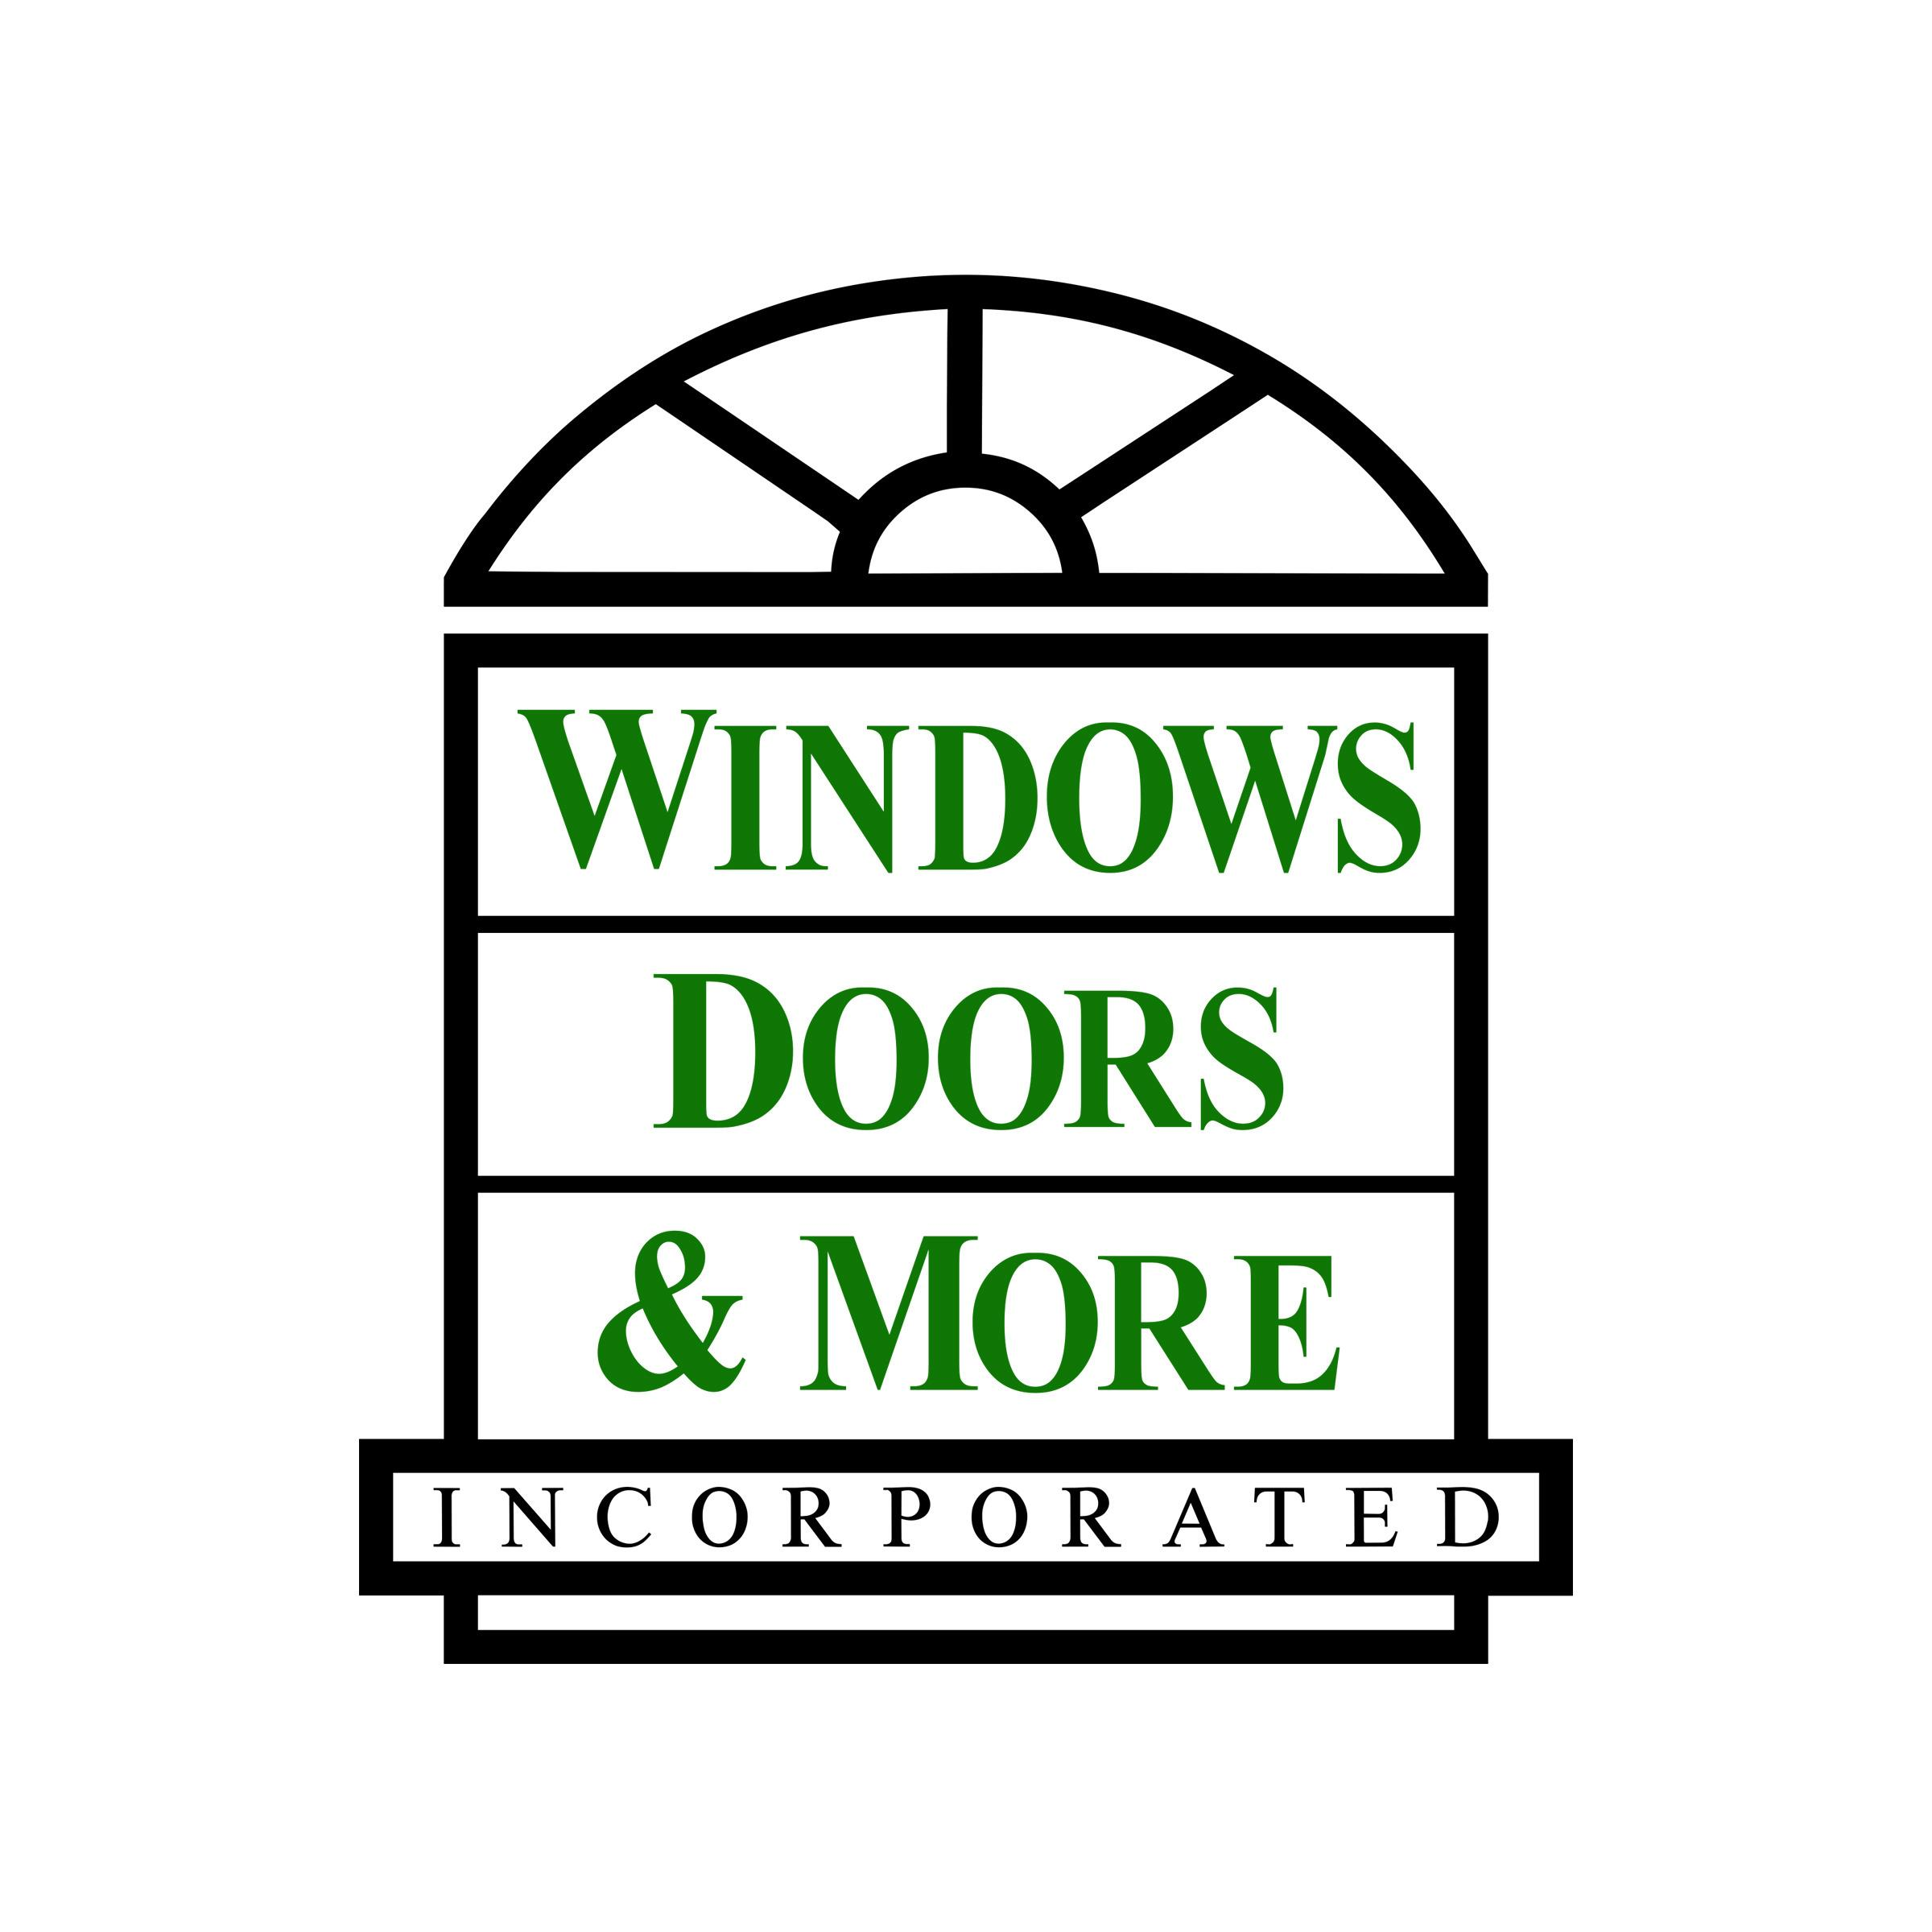 Windows, Doors & More, Inc.